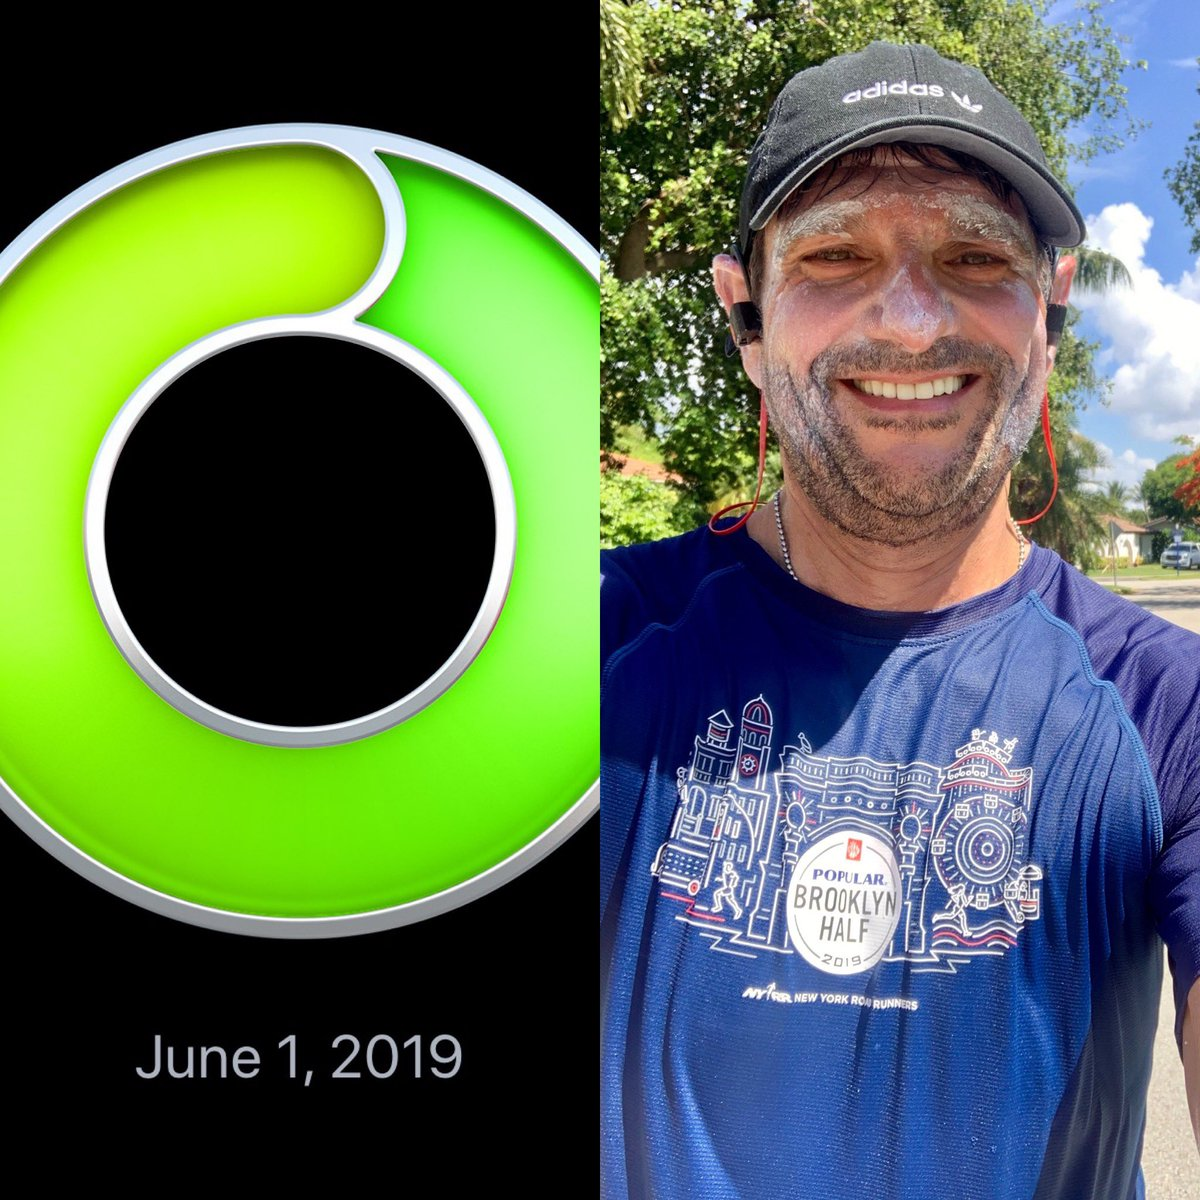 I ran outdoors for 3.40 MI with the Workout app on my #AppleWatch. #closeyourrings #popularbkhalf @nyrr